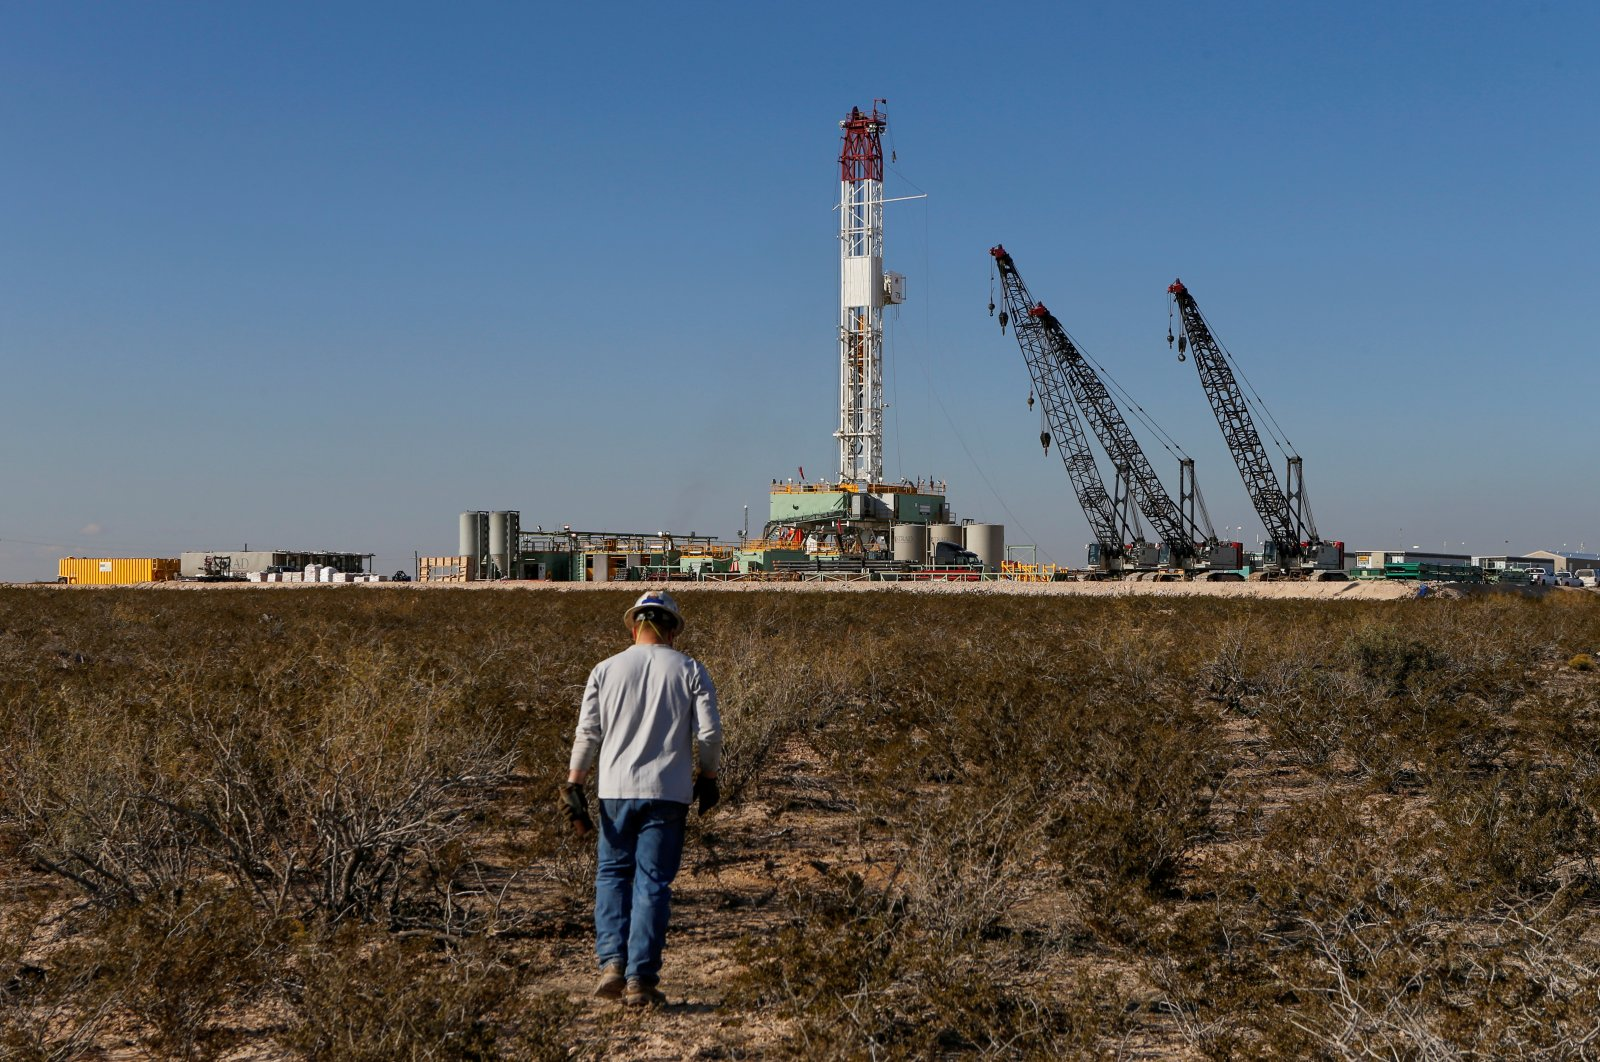 An oil worker walks toward a drill rig after placing ground monitoring equipment in the vicinity of the underground horizontal drill in Loving County, Texas, U.S., Nov. 22, 2019. (Reuters Photo)